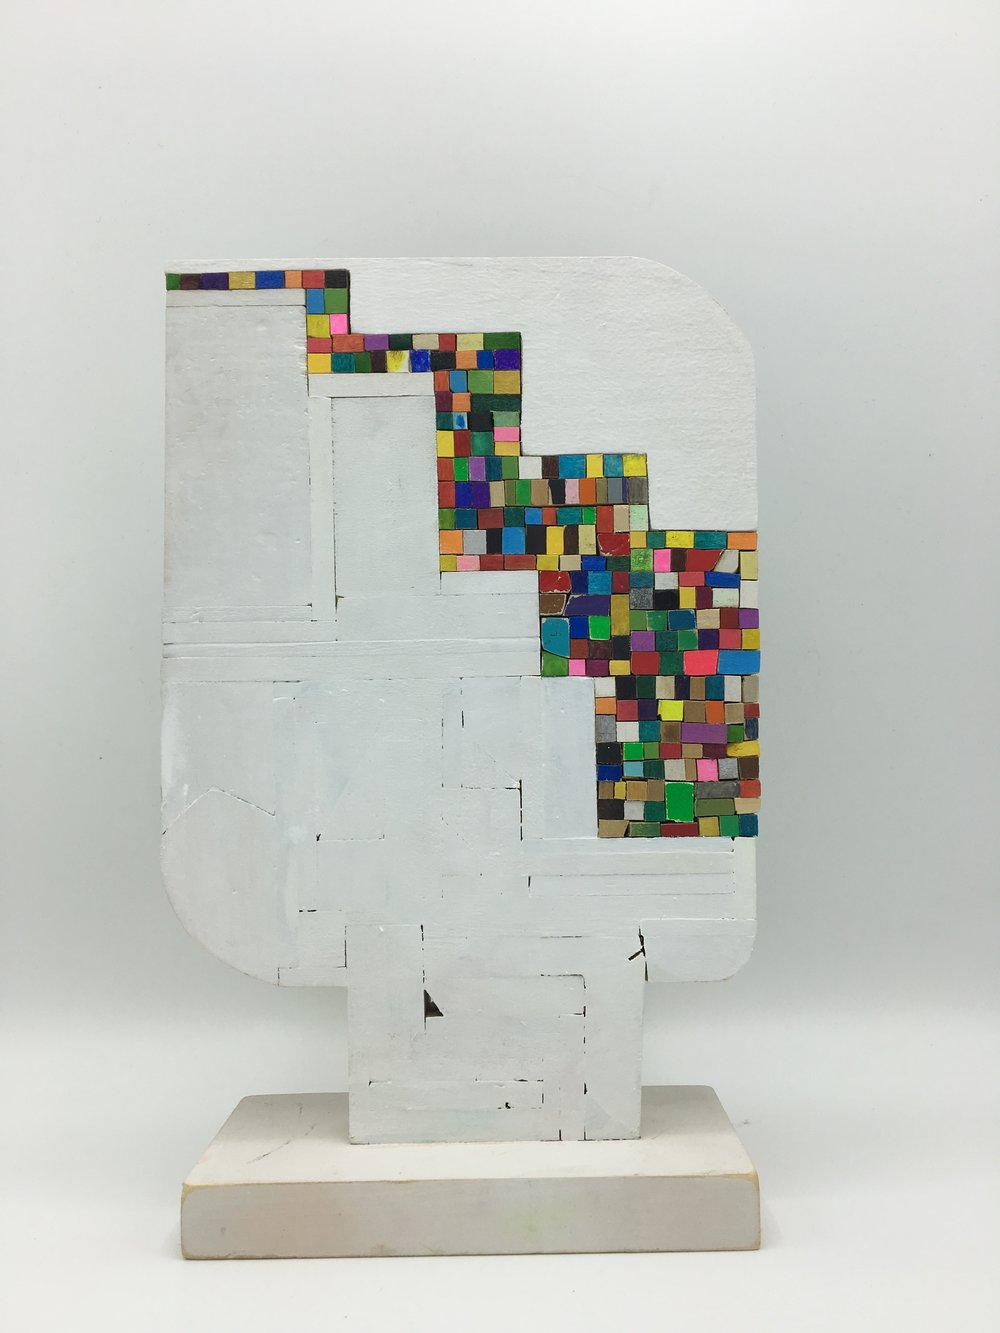 8 Bit , 2016 [private collection New York, NY] Wood, Paint, Colored Pencil, Glue 10 ½ x 6 ½ x 3 in. SOLD